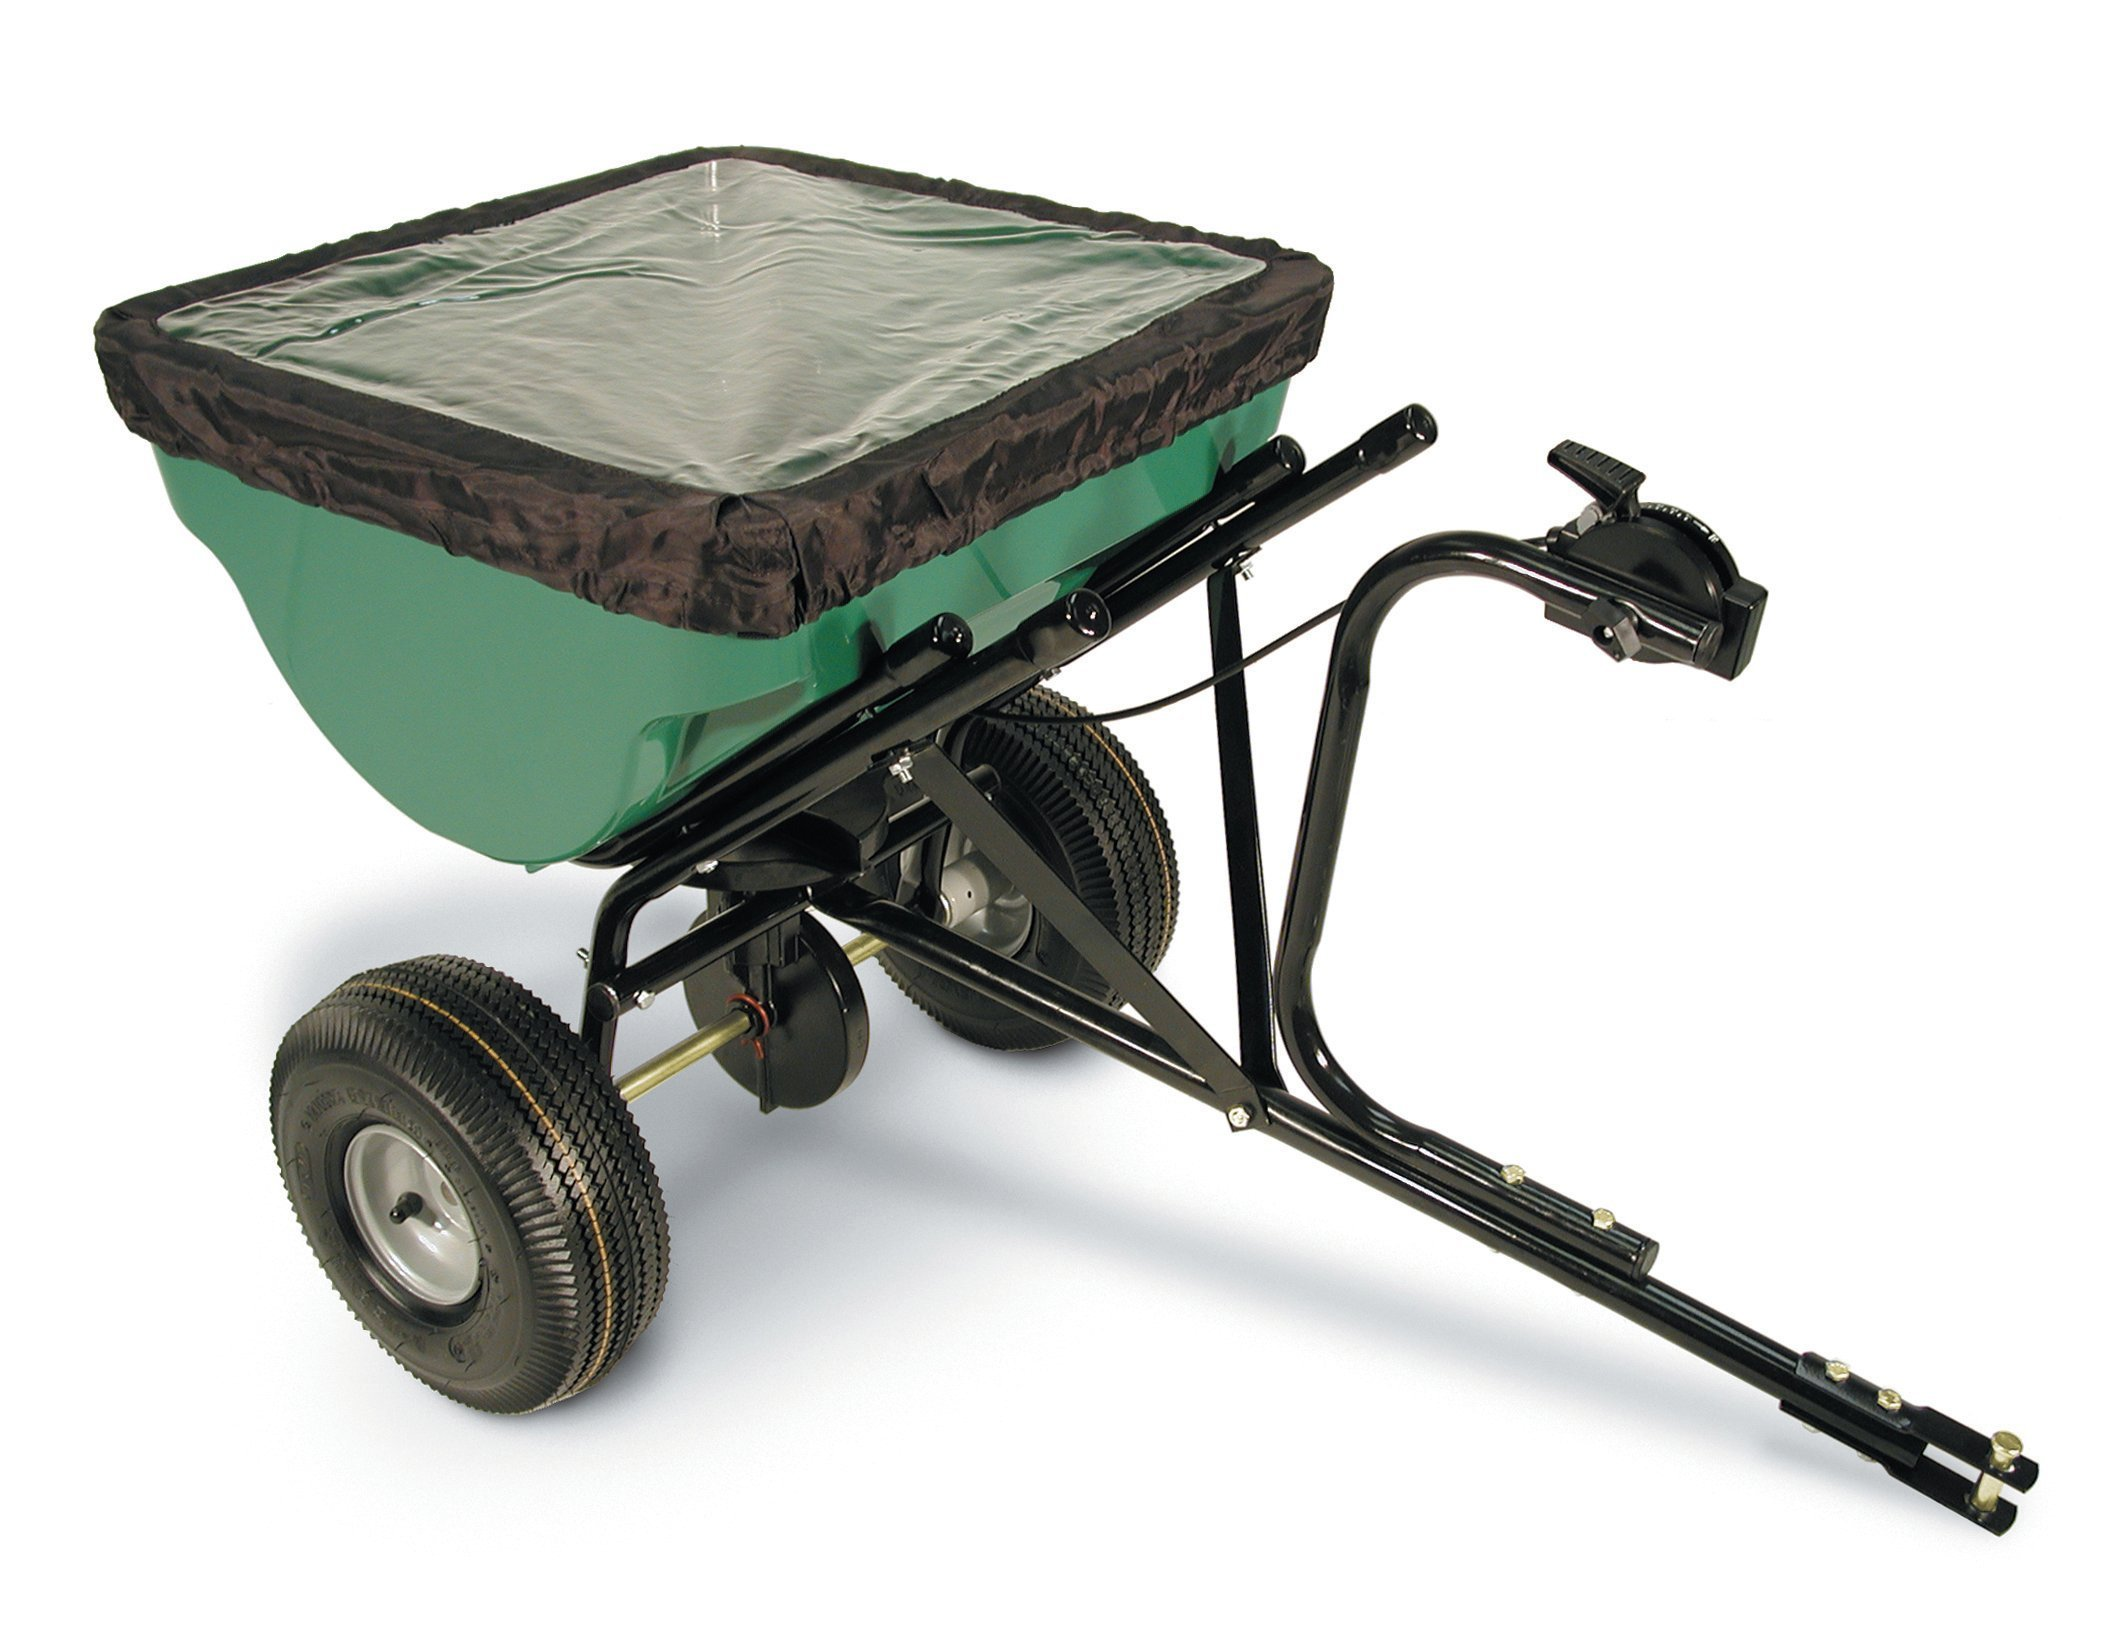 Precision Products 100-Pound Capacity Tow-Behind Semi-Commercial Broadcast Spreader TBS4500PRCGY by Precision Products